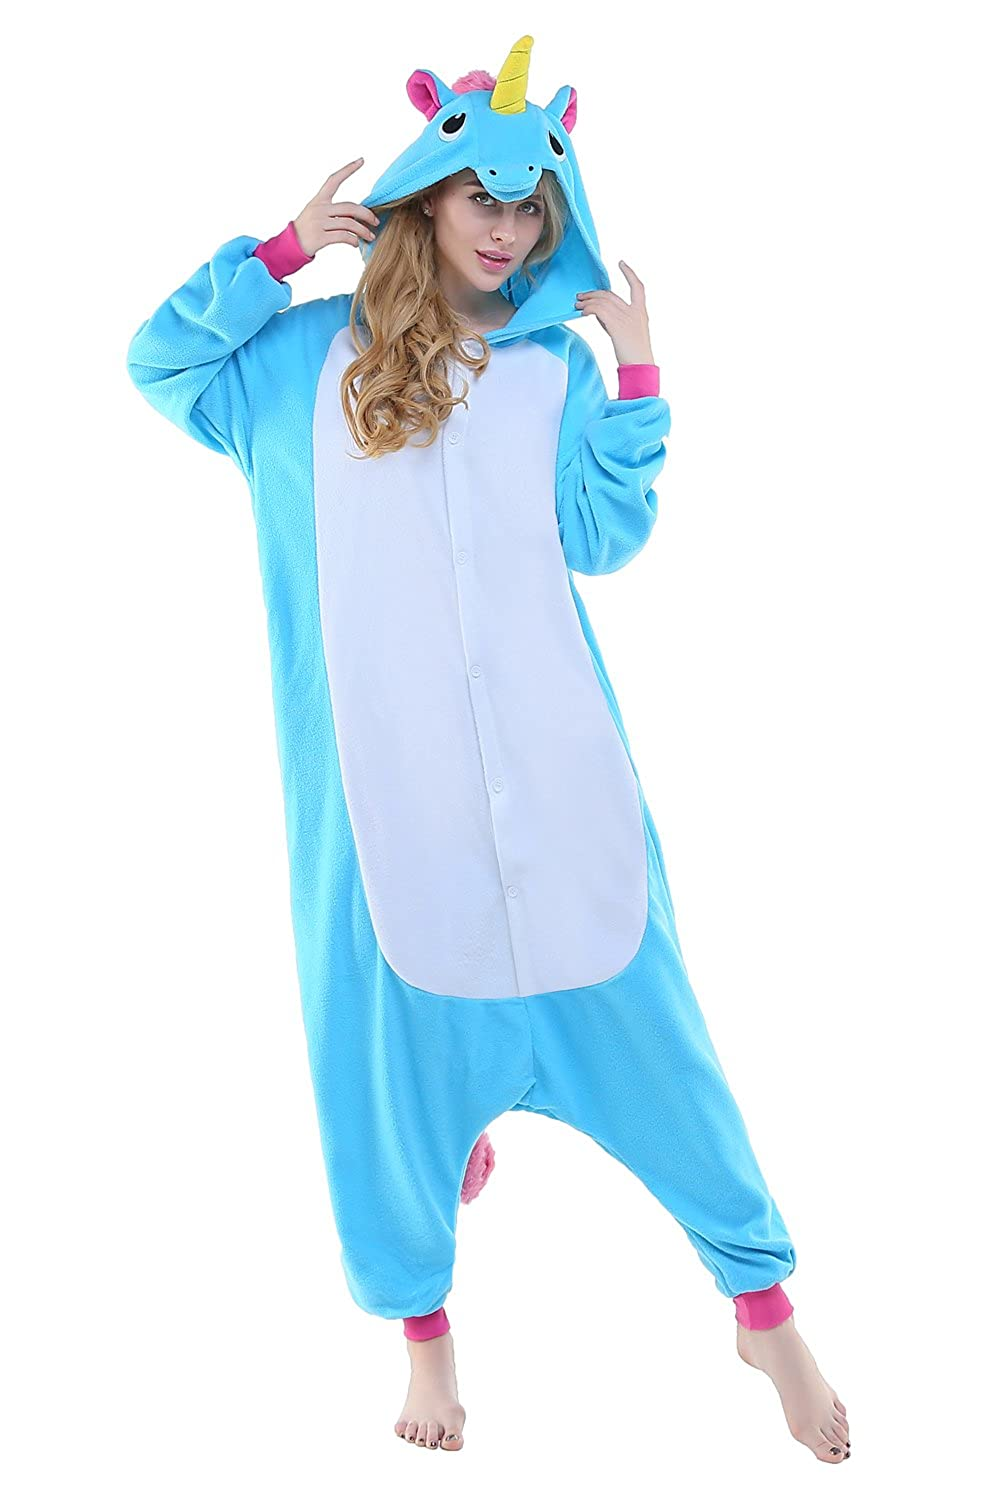 NEWCOSPLAY Sleepwear Christmas Halloween Cosplay Costumes Adult Unicorn Pajamas